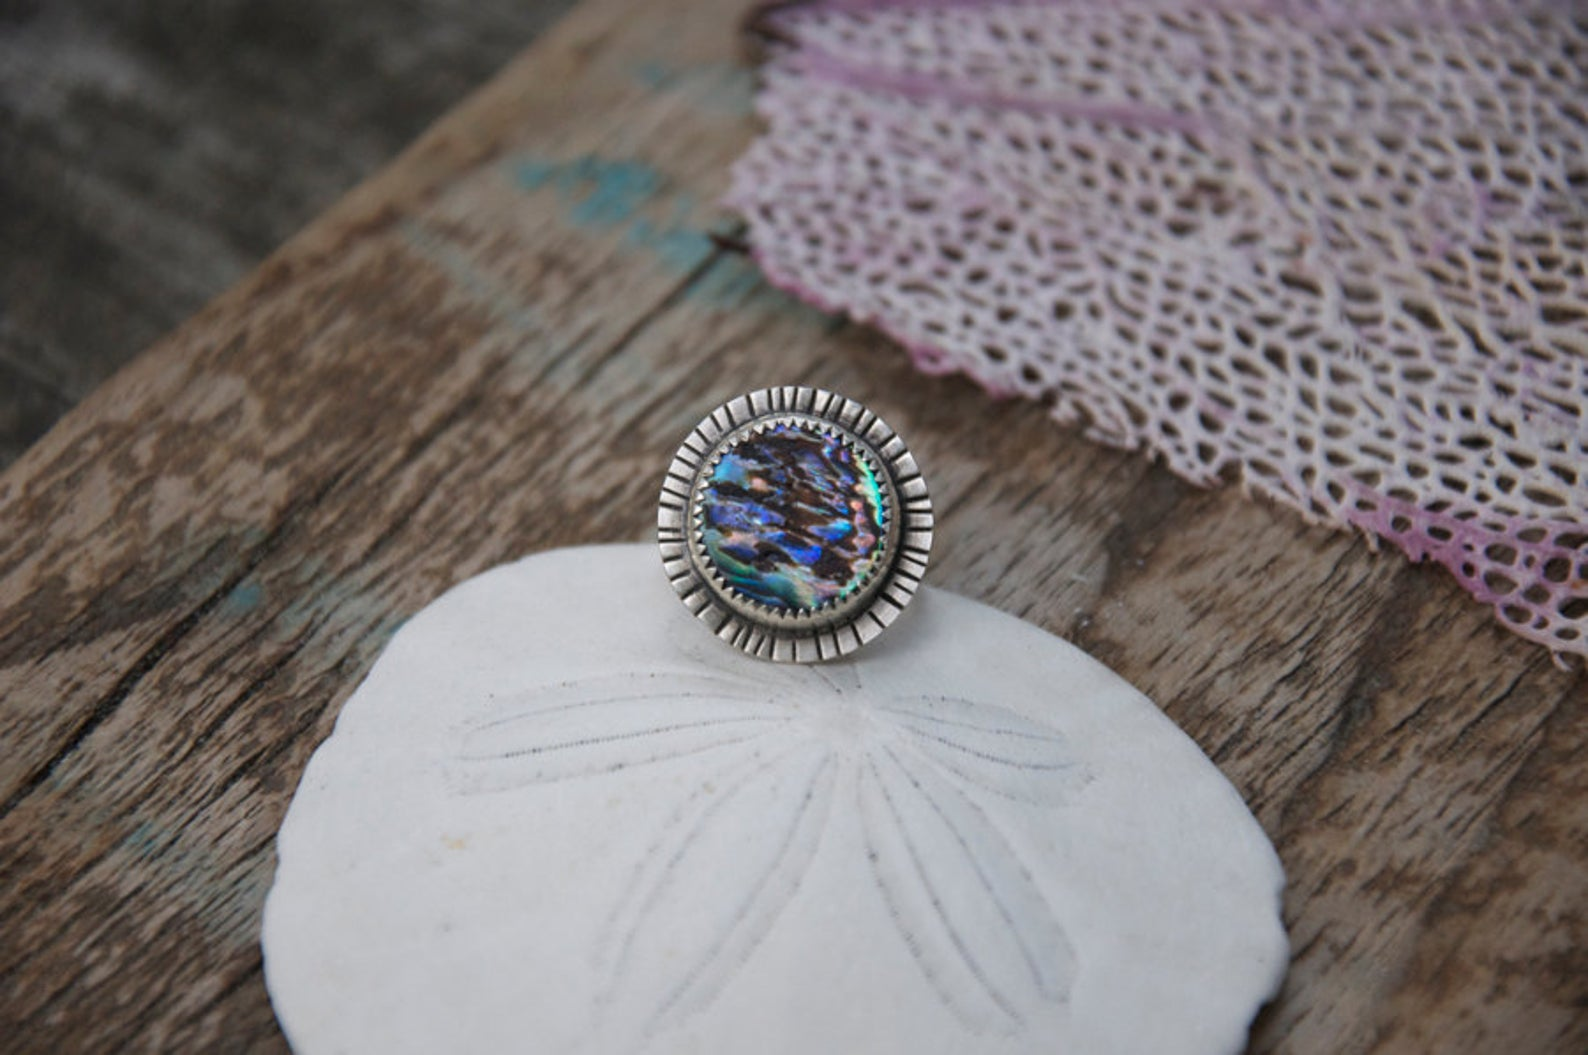 Handcrafted abalone Shell ring with hand stamped details made by Special J Creations